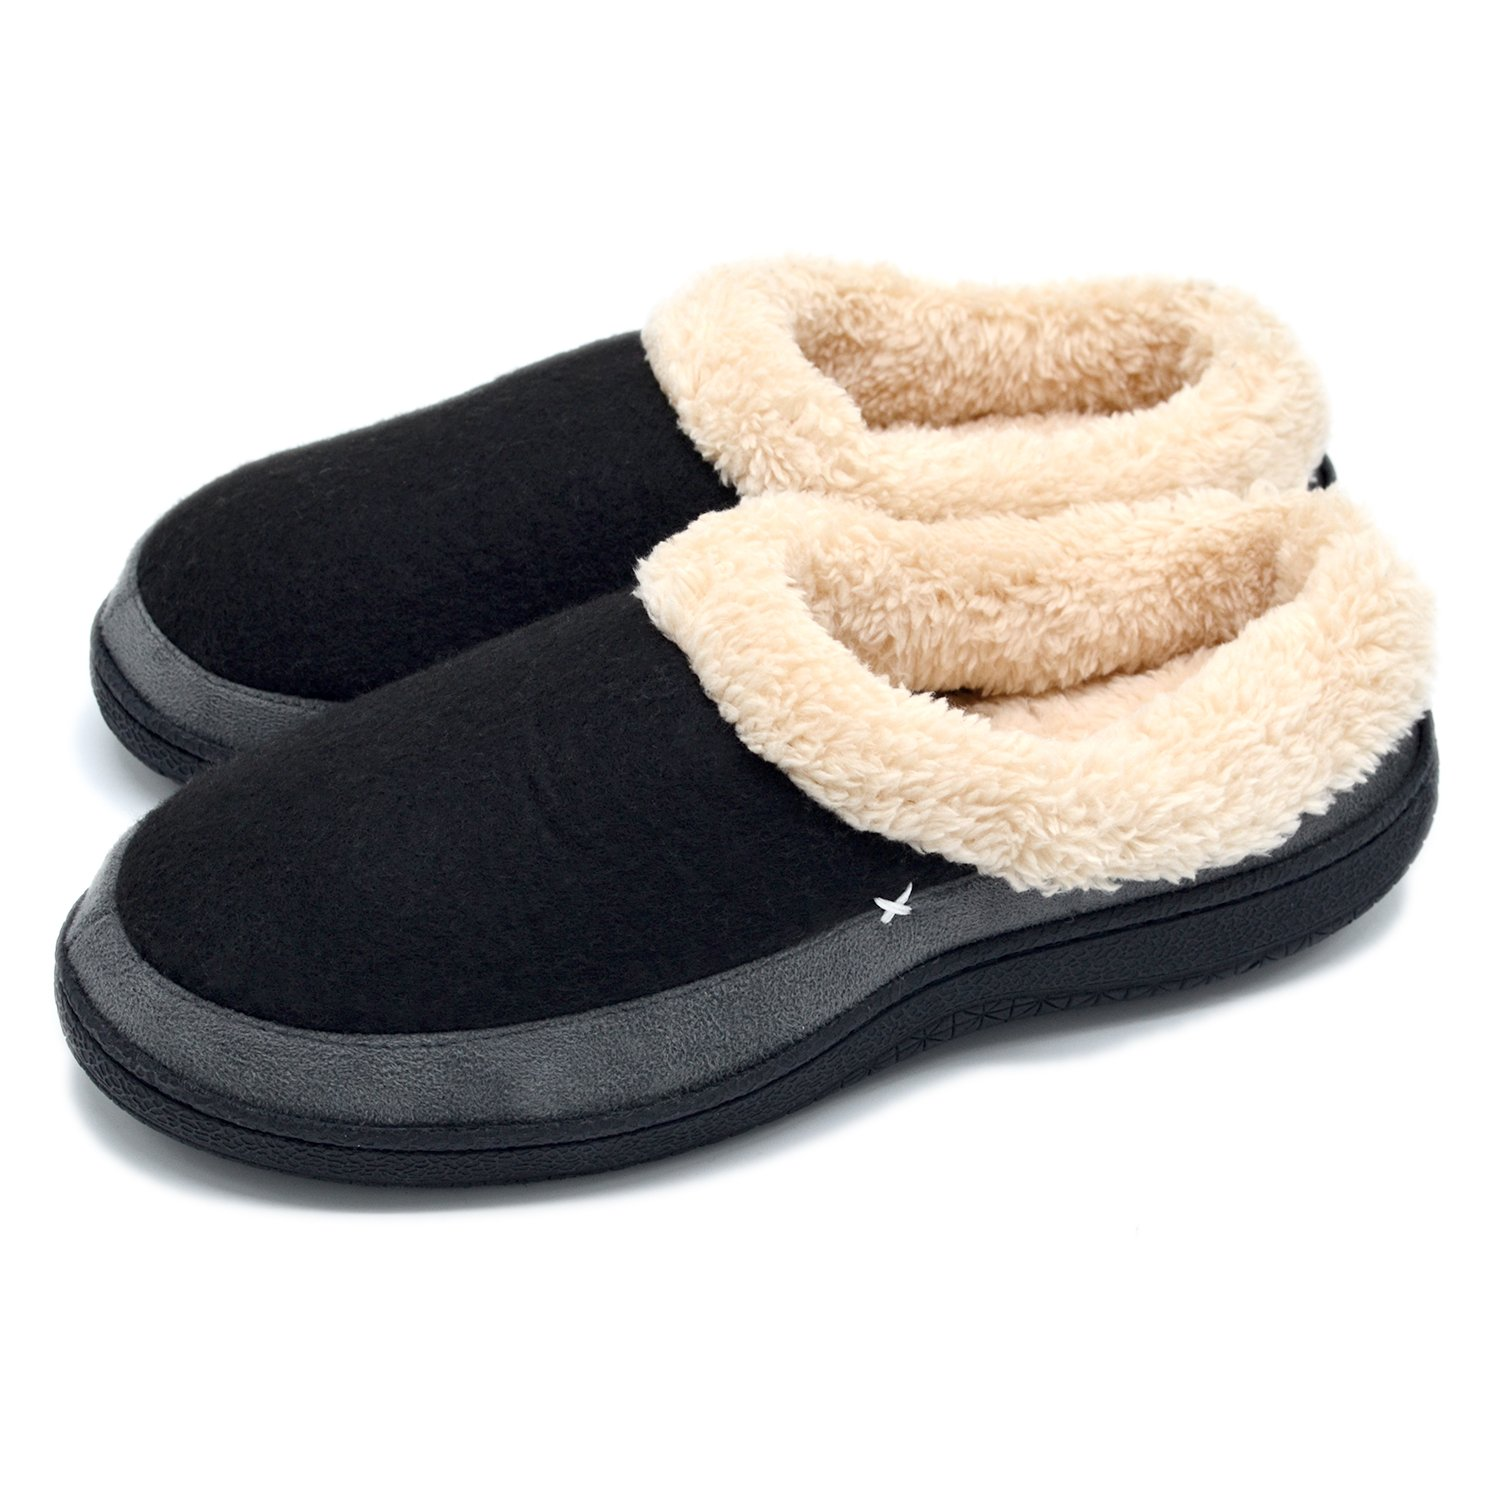 Men's Comfort Memory Foam Slippers Wool-Like Plush Fleece Lined House Shoes Indoor/Outdoor Non-Skid Rubber Sole (X-Large/13-14 D(M) US, Black)